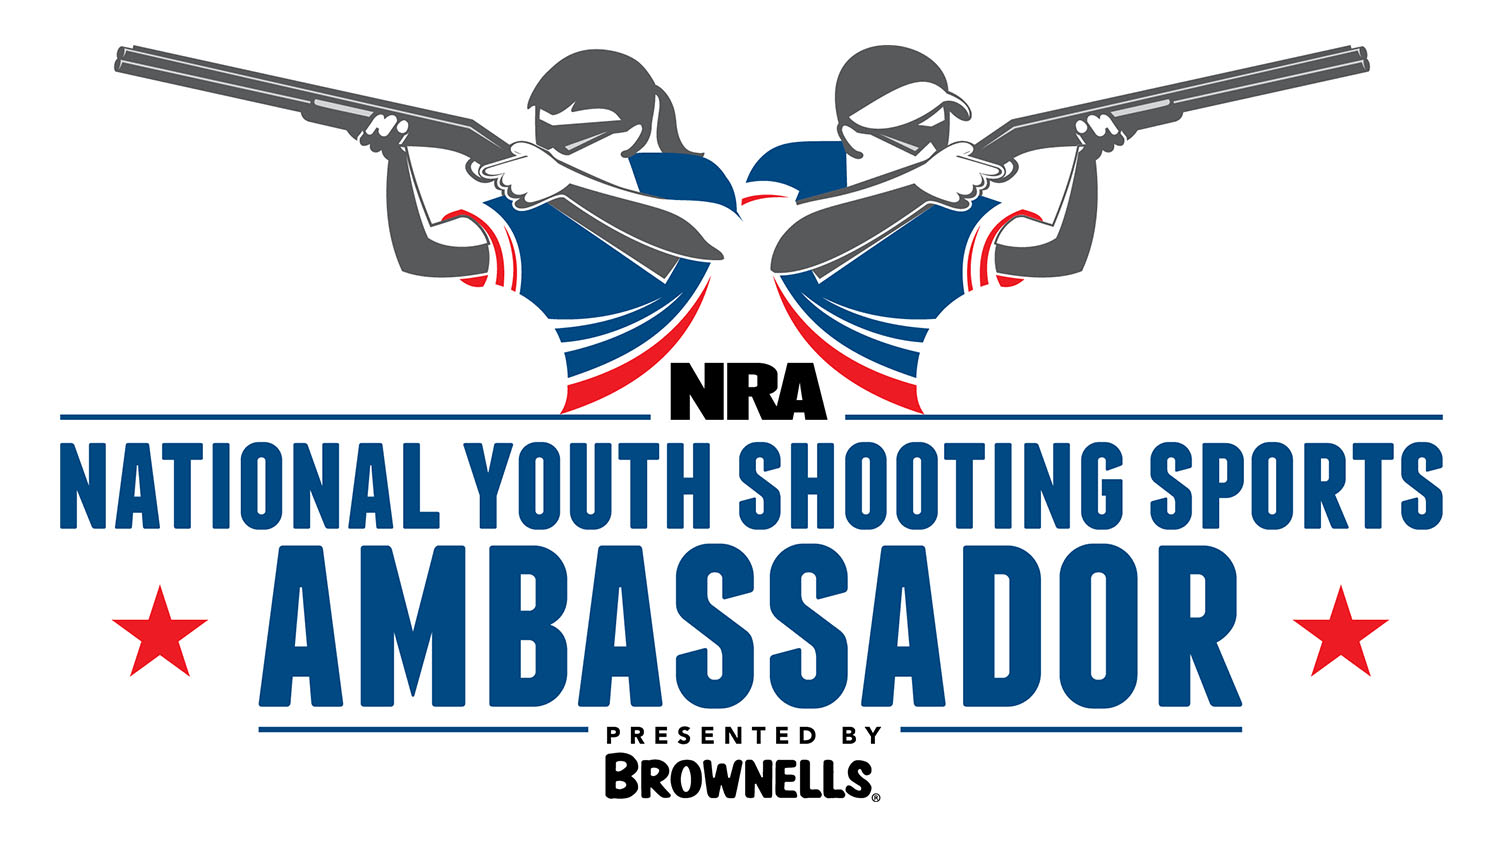 NRA Announces 2019 National Youth Shooting Sports Ambassadors Presented by Brownells